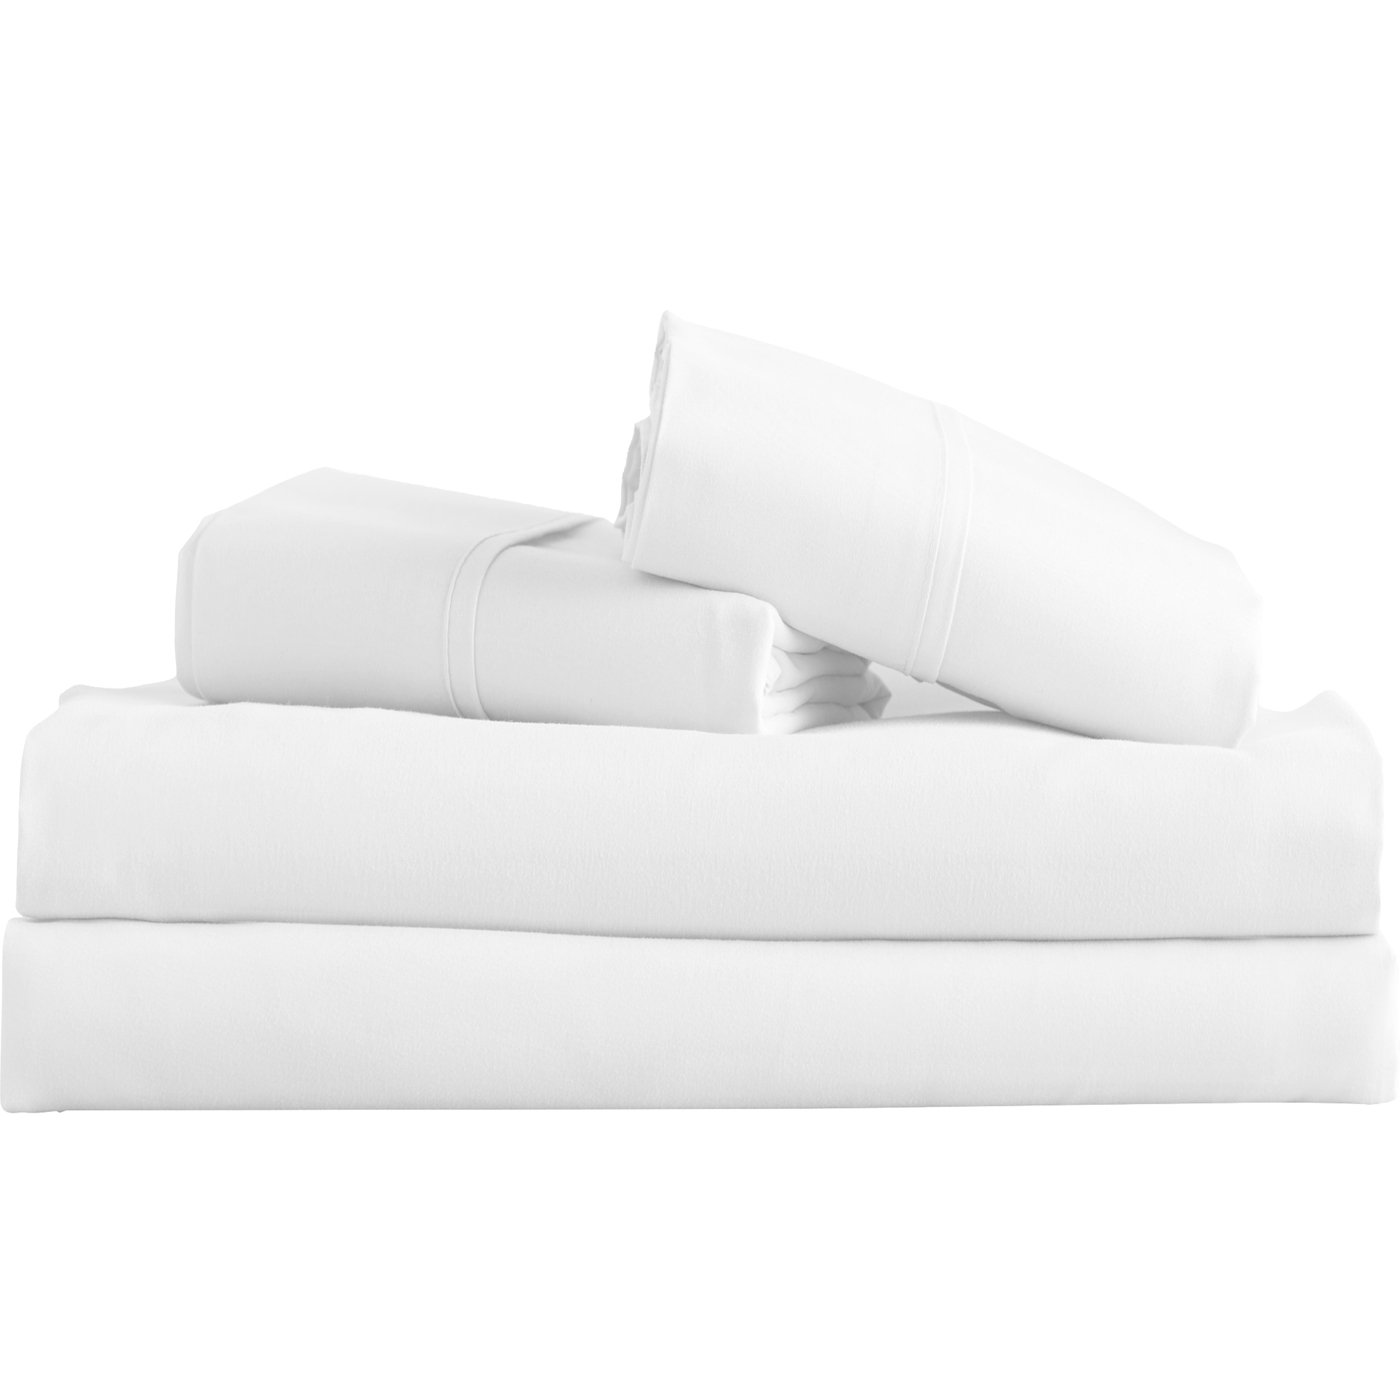 Supreme-Super-Soft-4-Piece-Bed-Sheet-Set-Deep-Pocket-Bedding-All-Colors-Sizes thumbnail 68